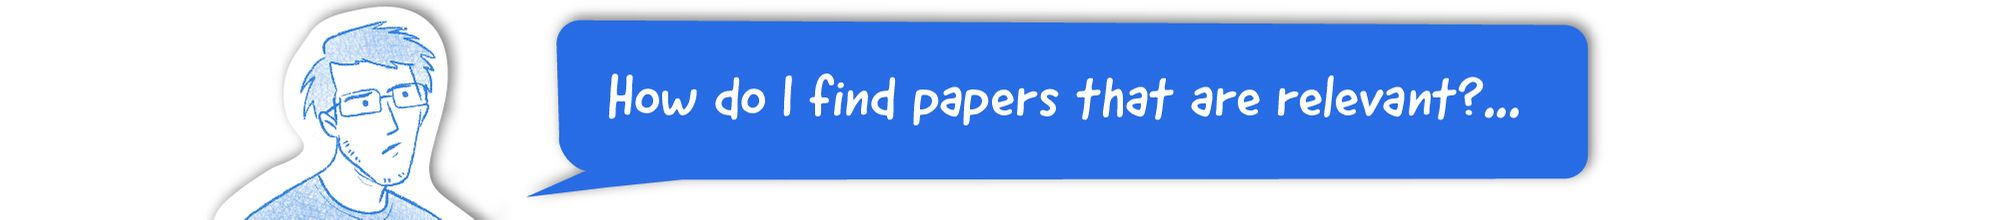 How do I find papers that are relevant?